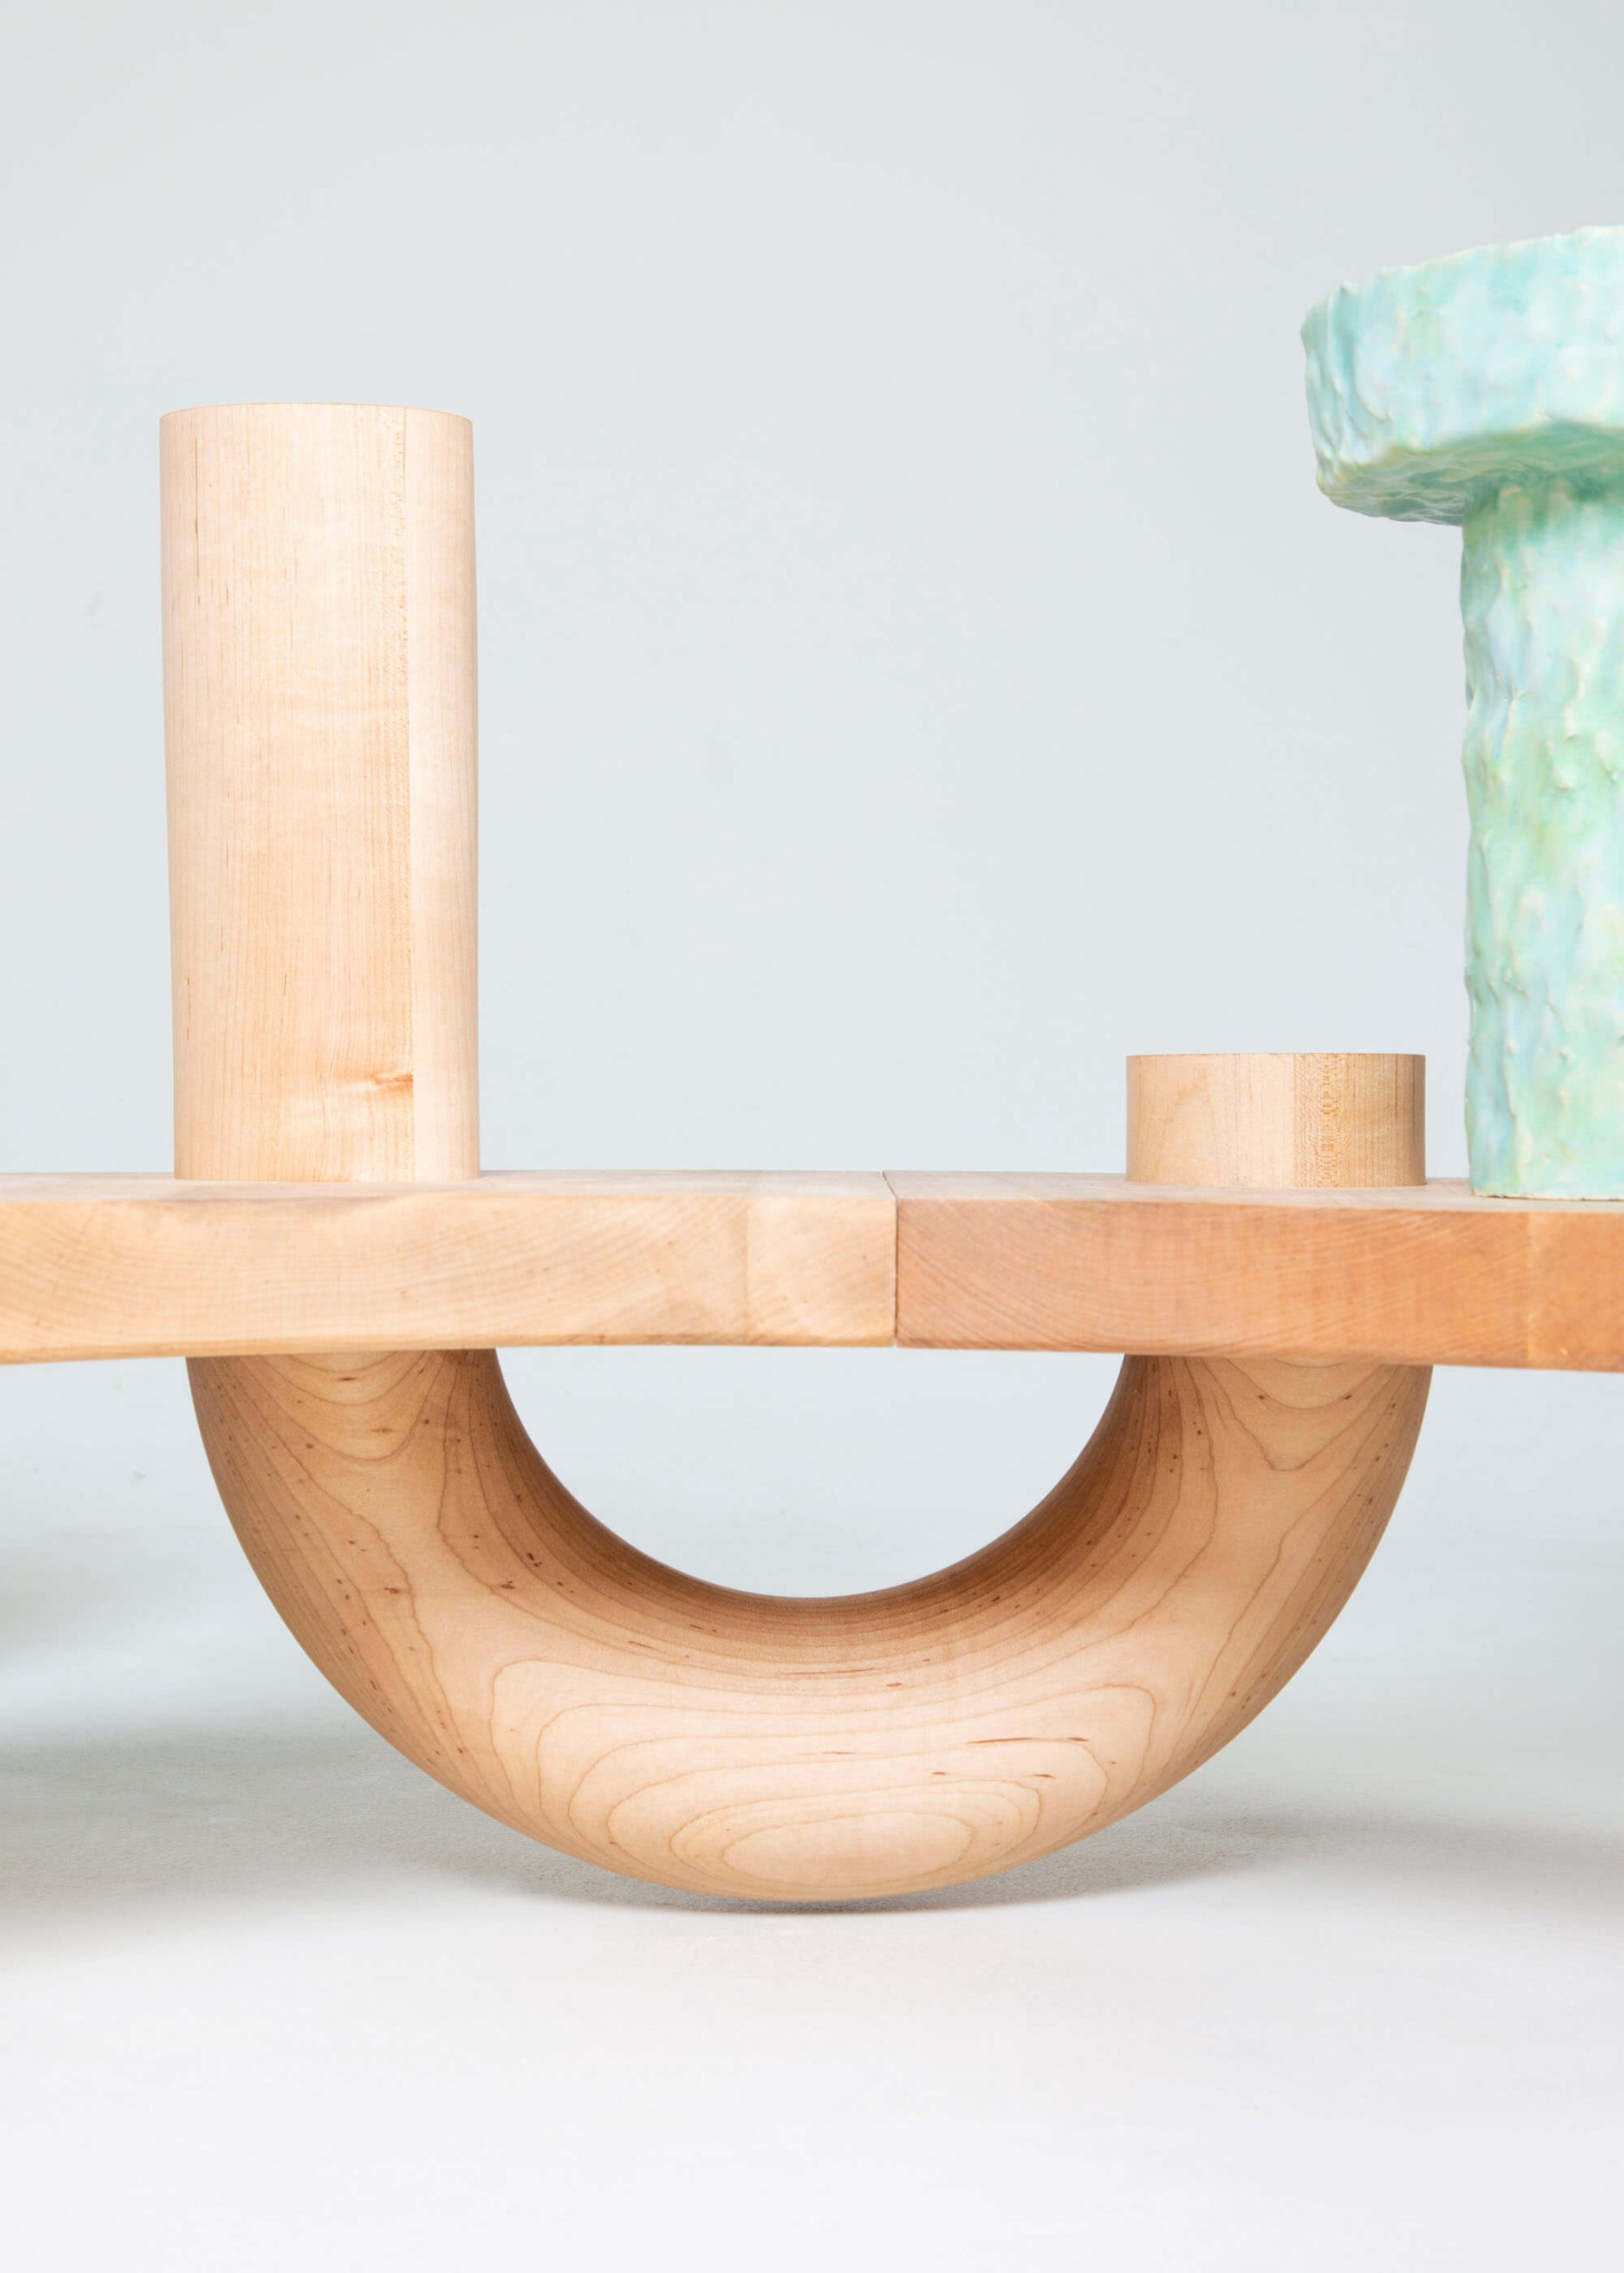 close up of large curved horizontal sculpture, light colored wood with pastel ceramic pots